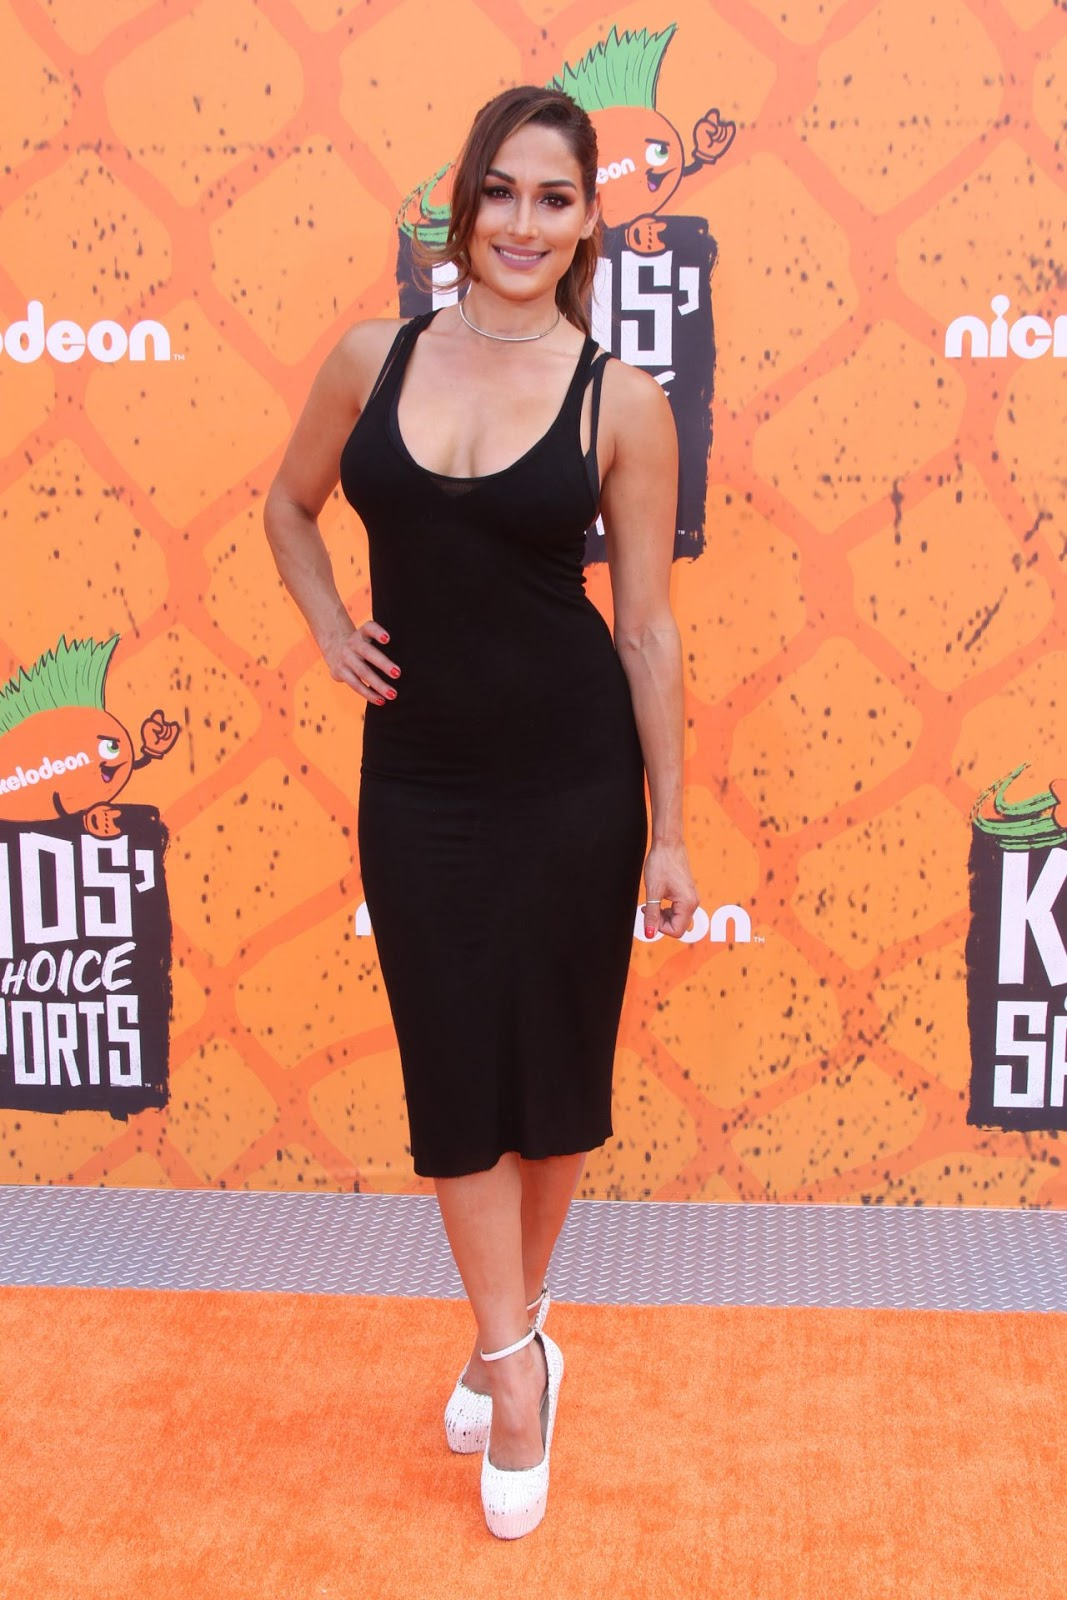 Nikki Bella wears sheer dress to the Nickelodeon Kids' Choice Sports Awards 2016